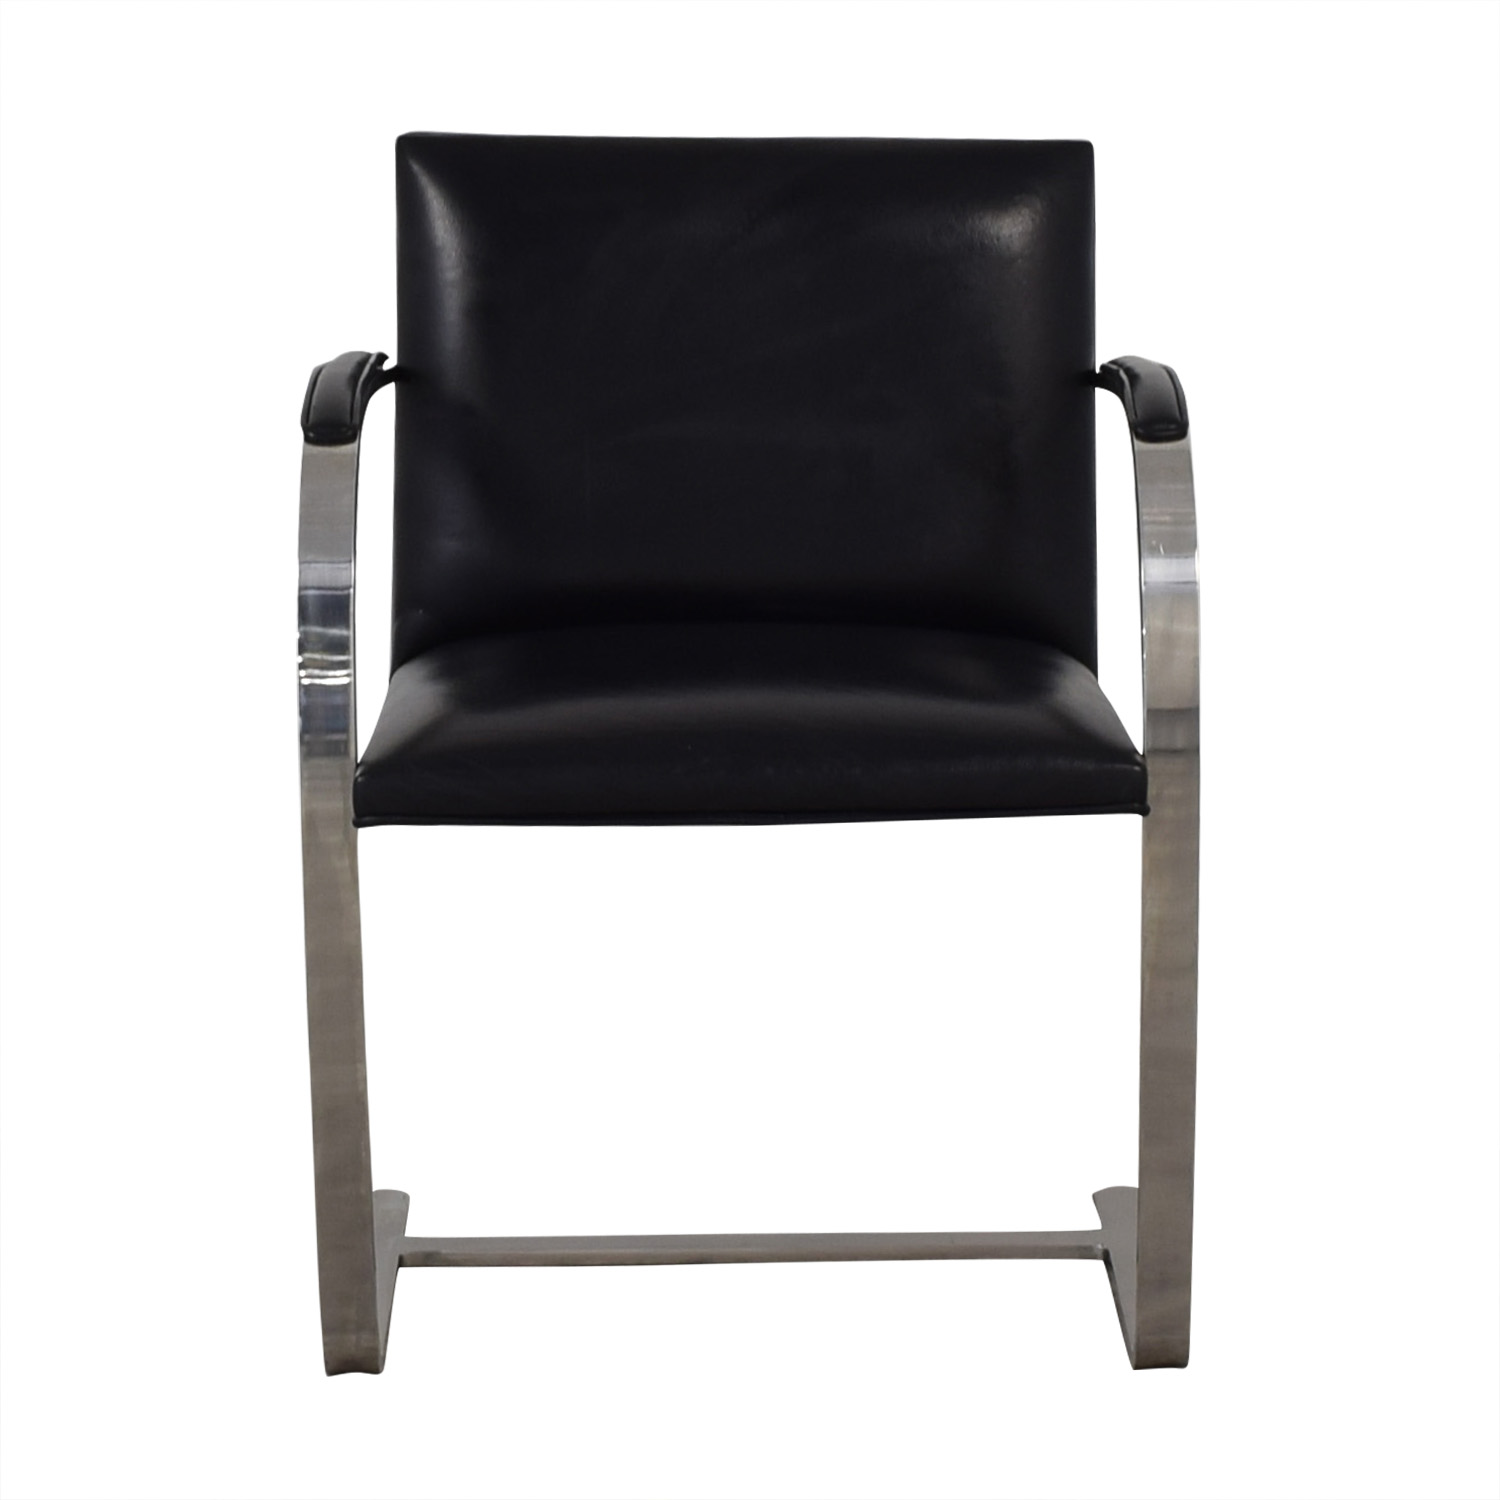 Knoll Knoll BRNO Chair used